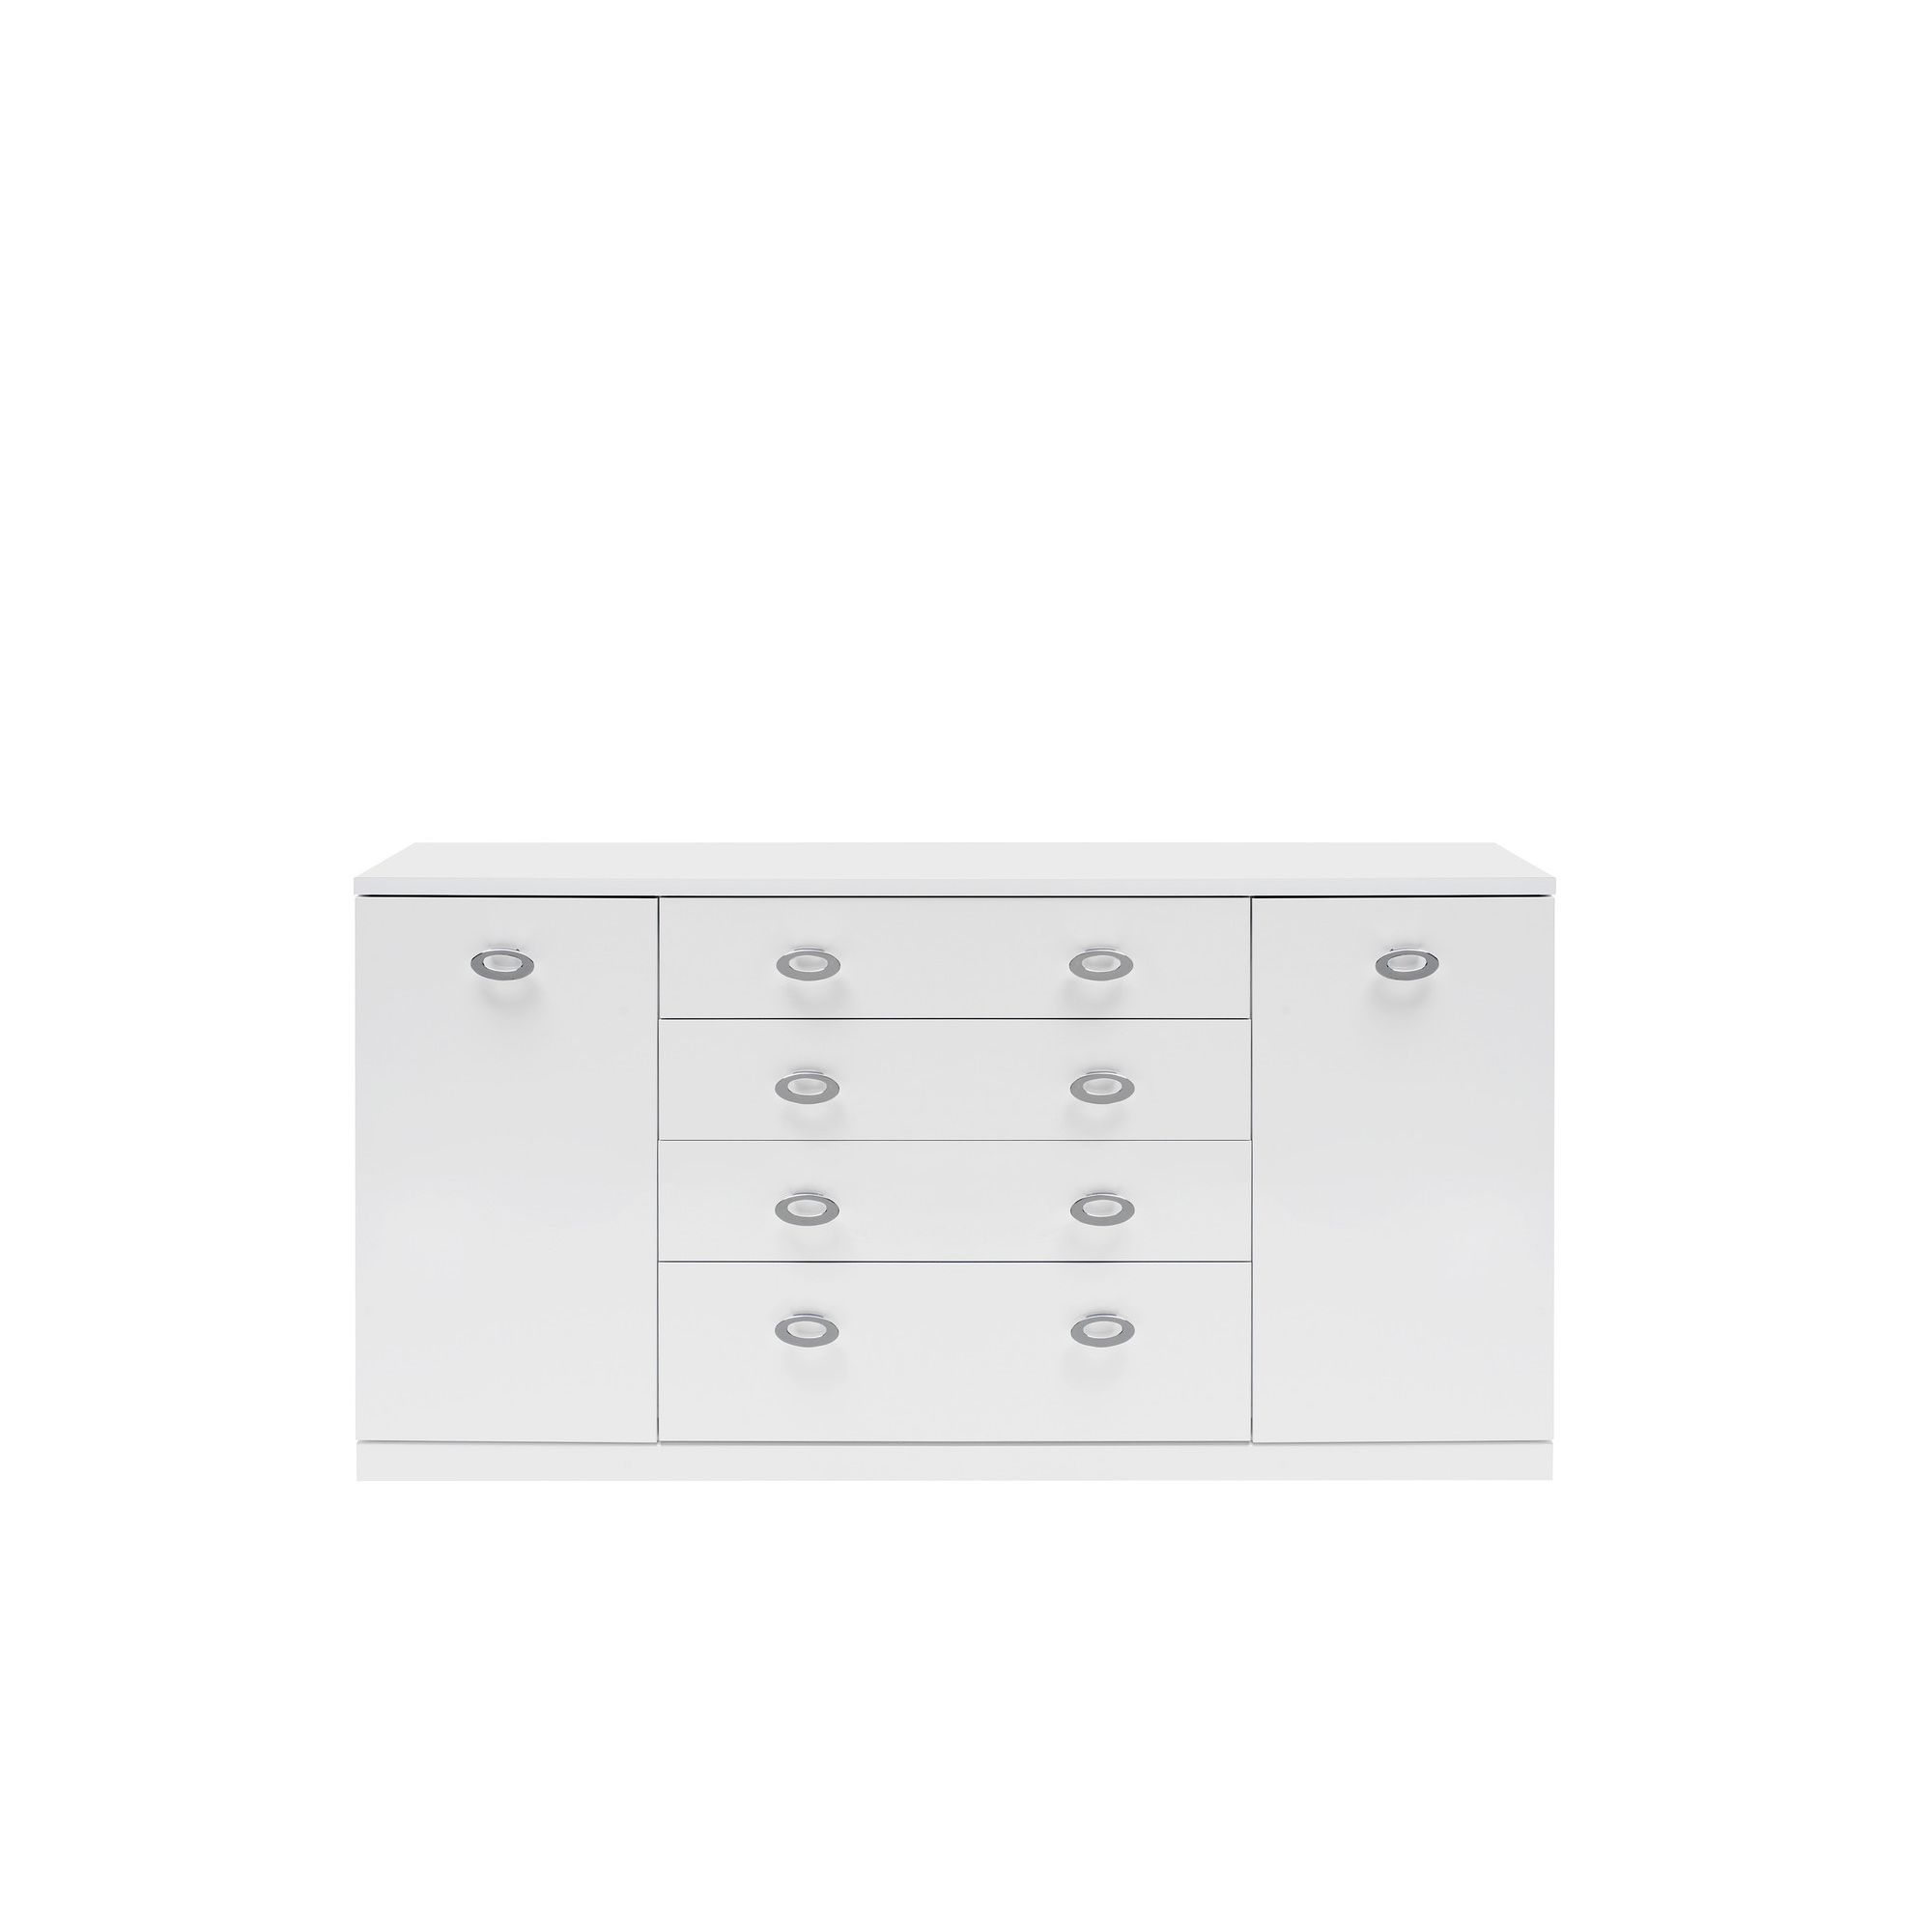 Caxton Manhattan Large 2 Door / 4 Drawer Sideboard in White Gloss at Tesco Direct